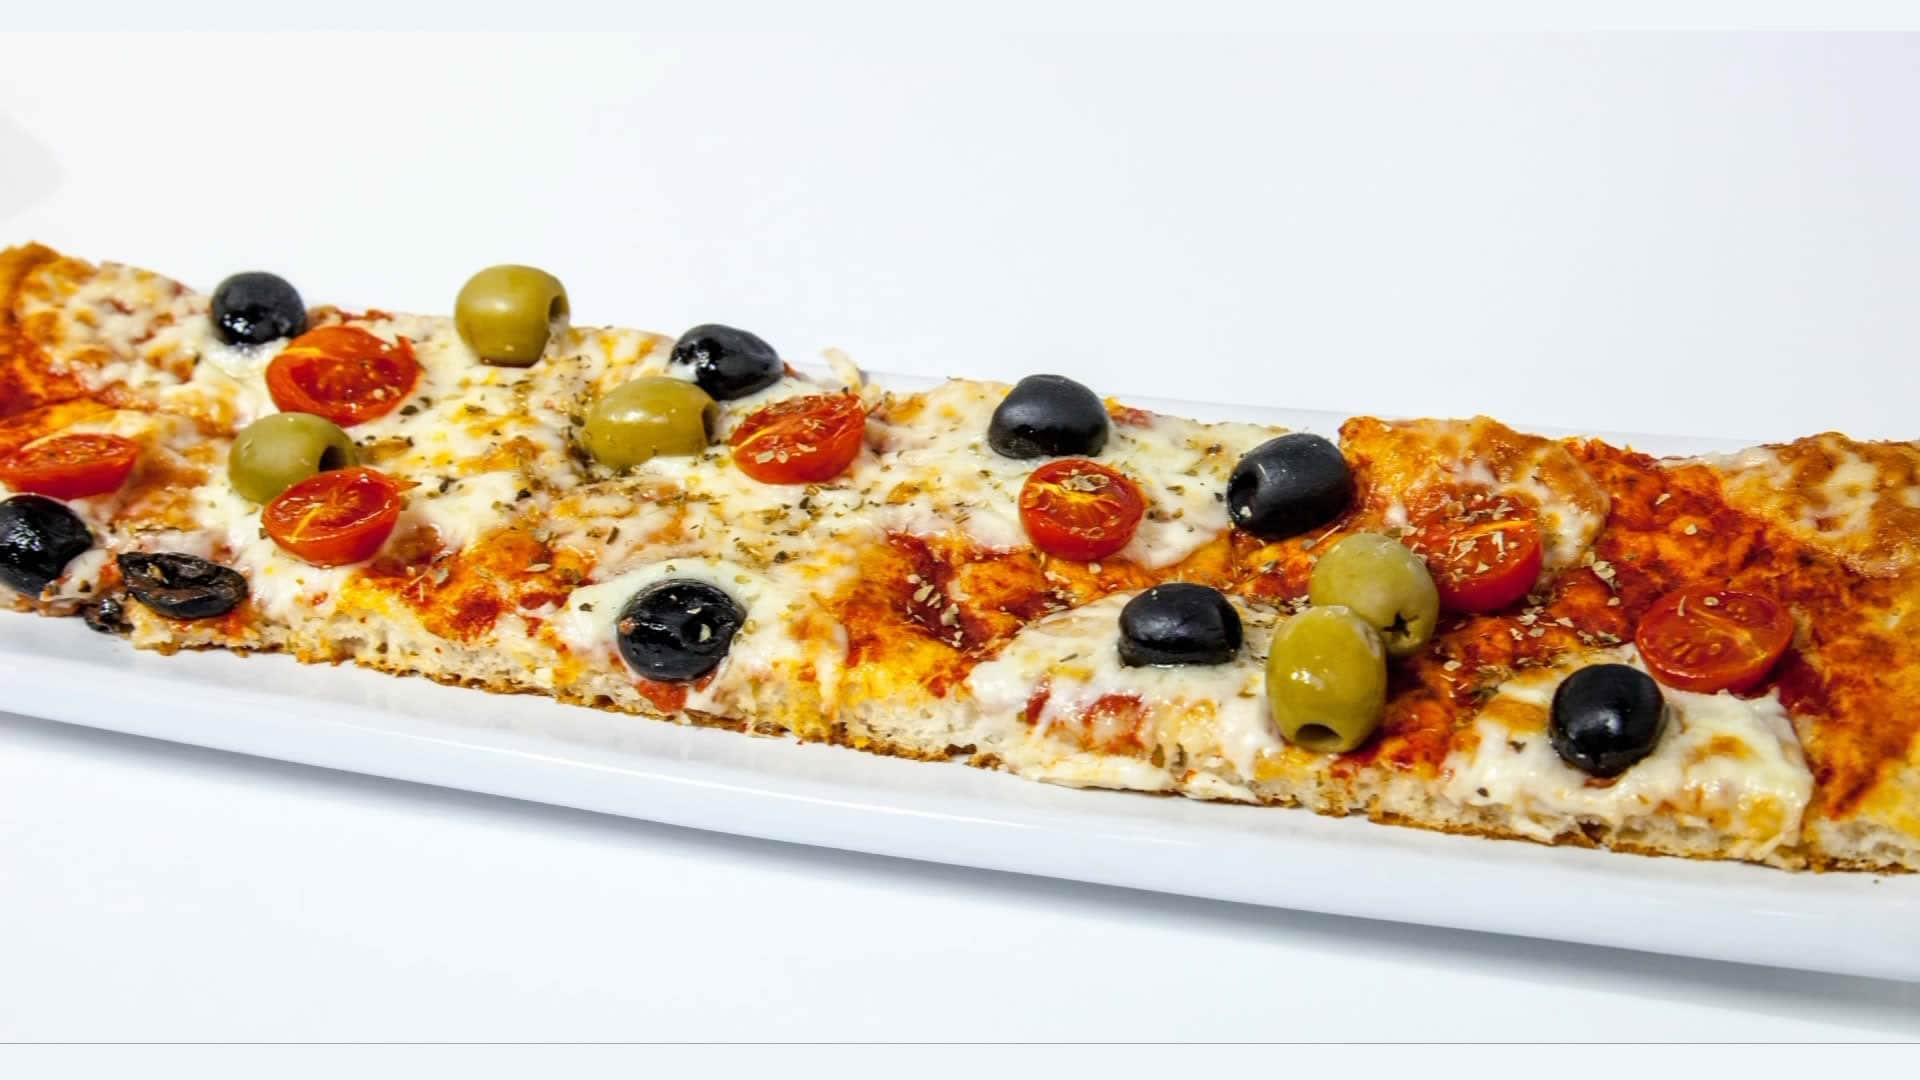 Pizza Soffice Alle Patate Impasto Della Pizza Con Patate | Share The ...